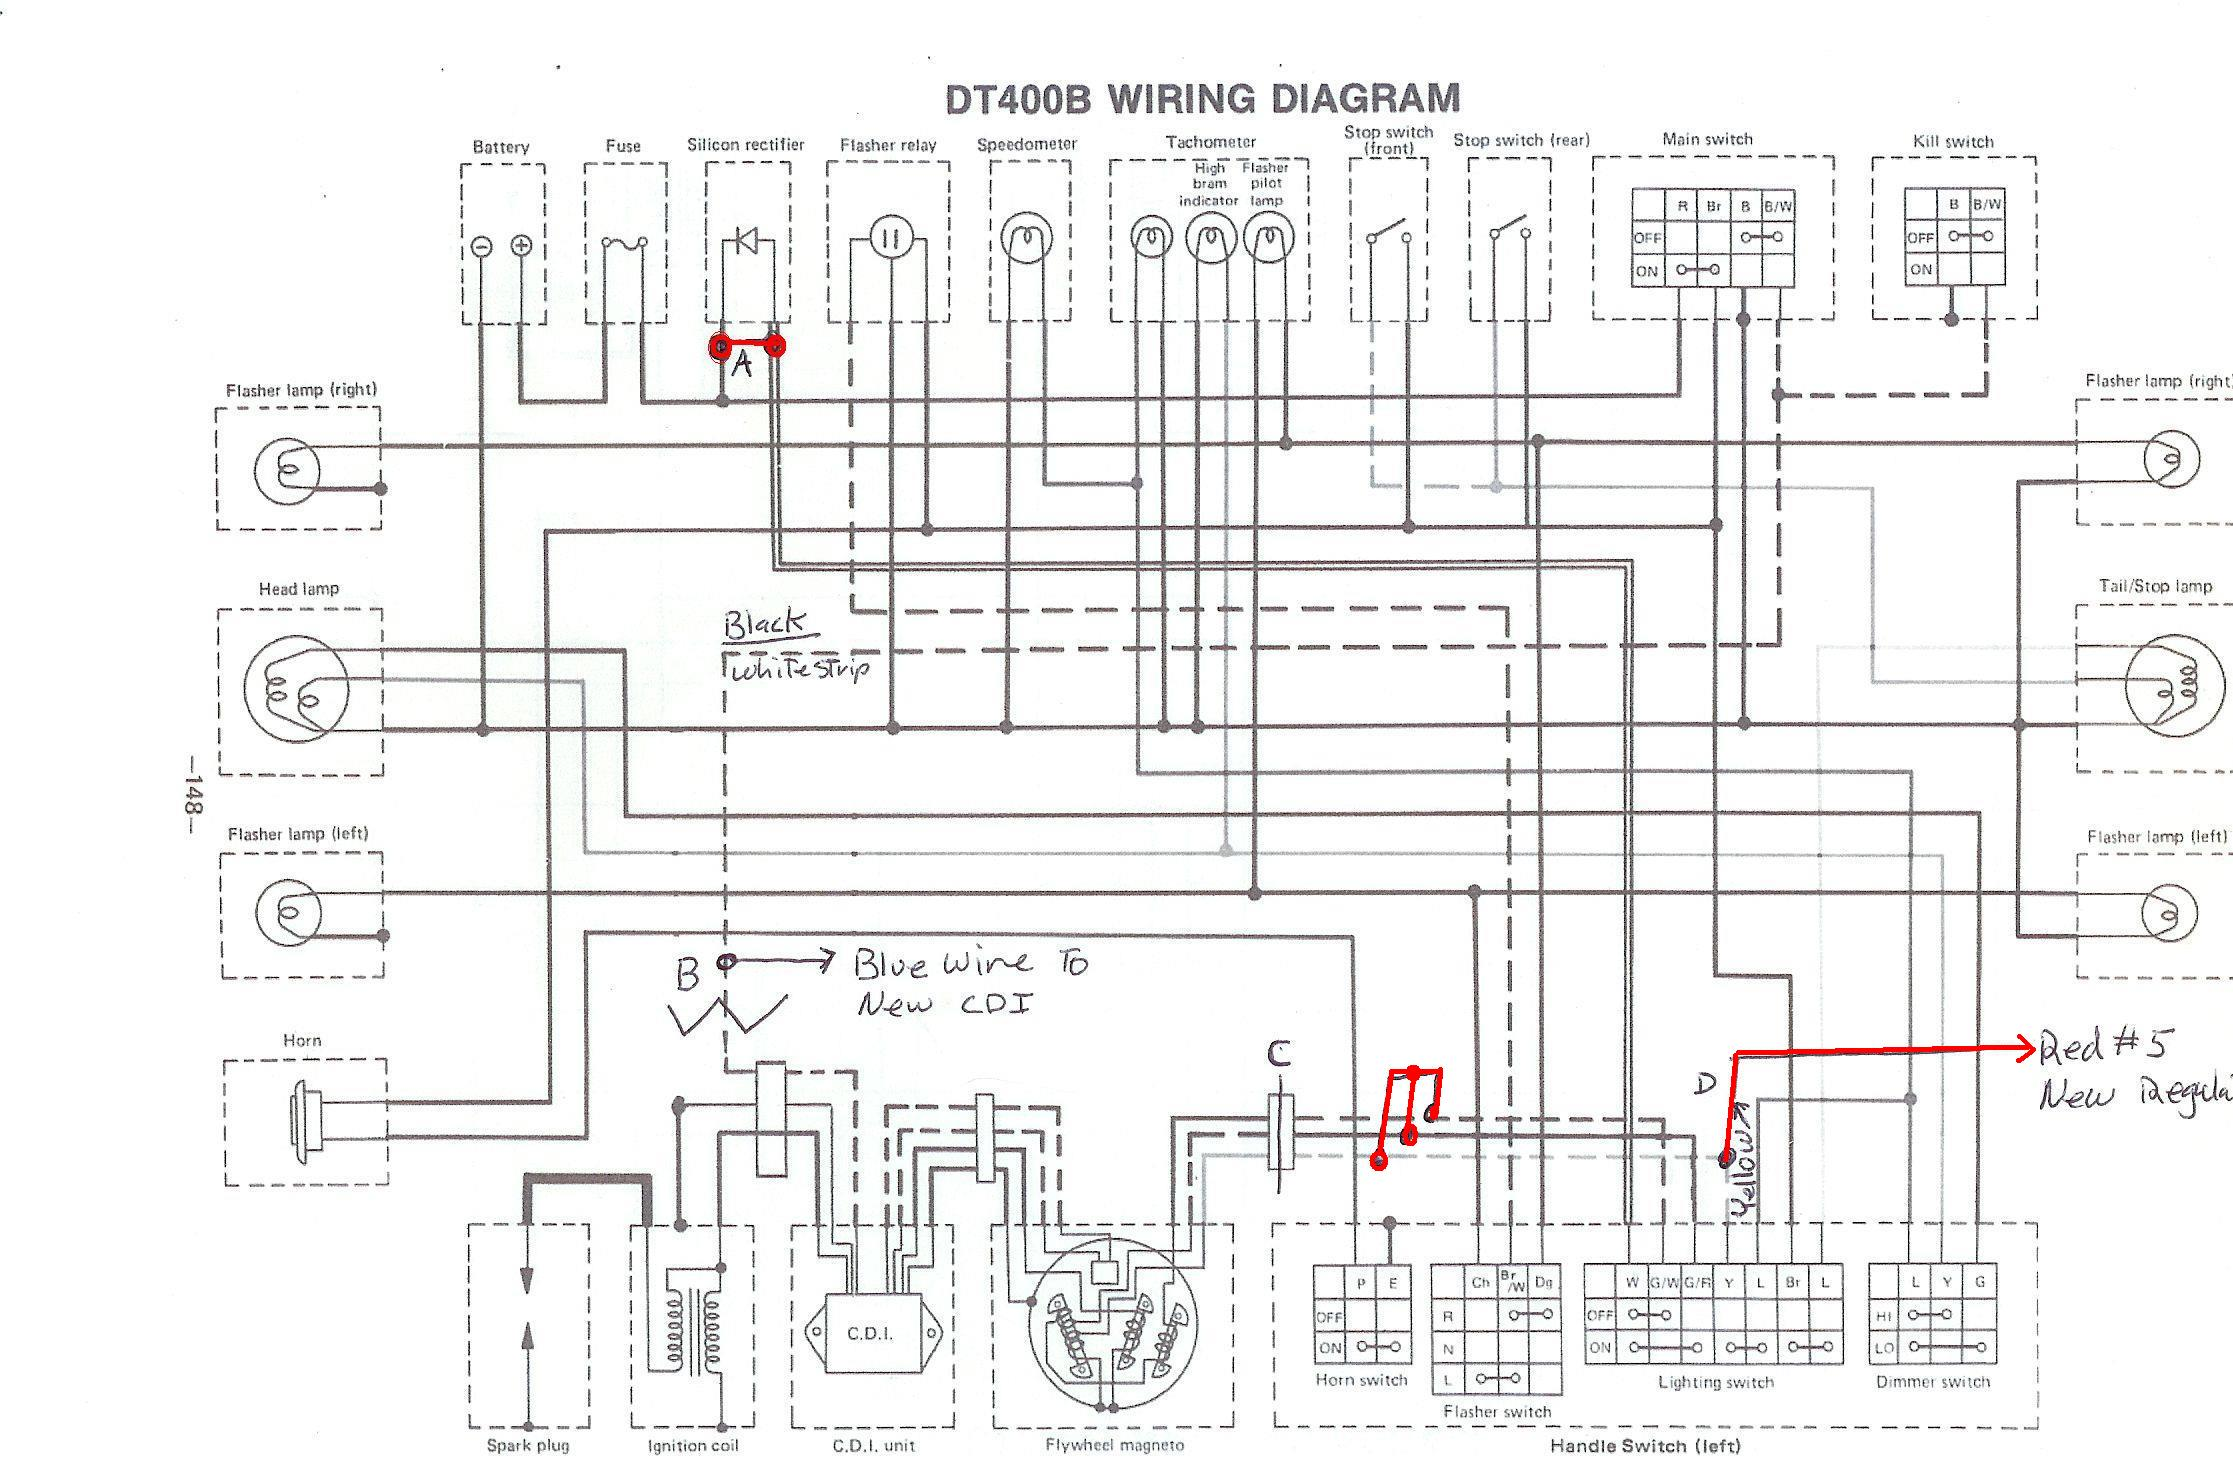 dt400 wiring diagram enthusiast wiring diagrams u2022 rh rasalibre co 74 Yamaha 125 Enduro Mechanical Diagram Yamaha Schematic Diagram